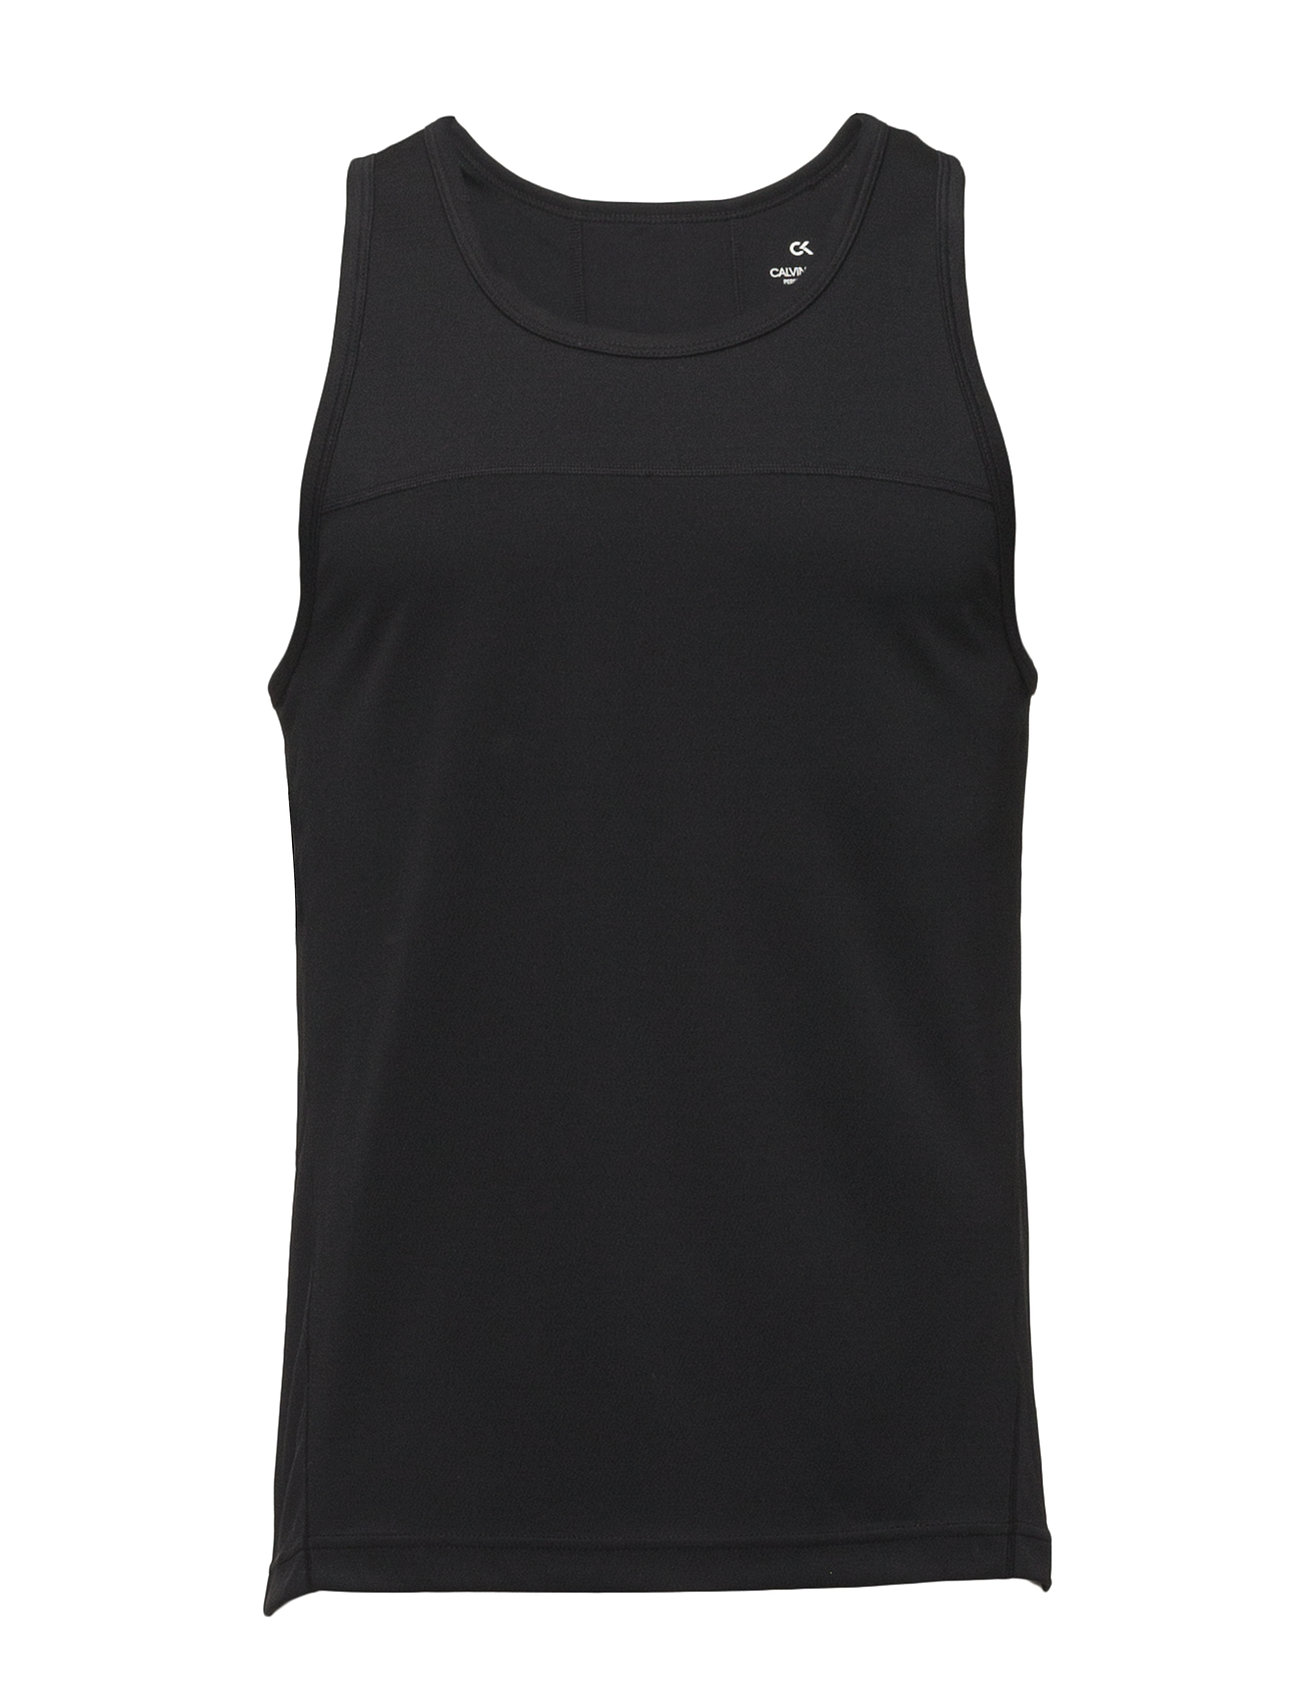 Calvin Klein Performance TANK - CK BLACK